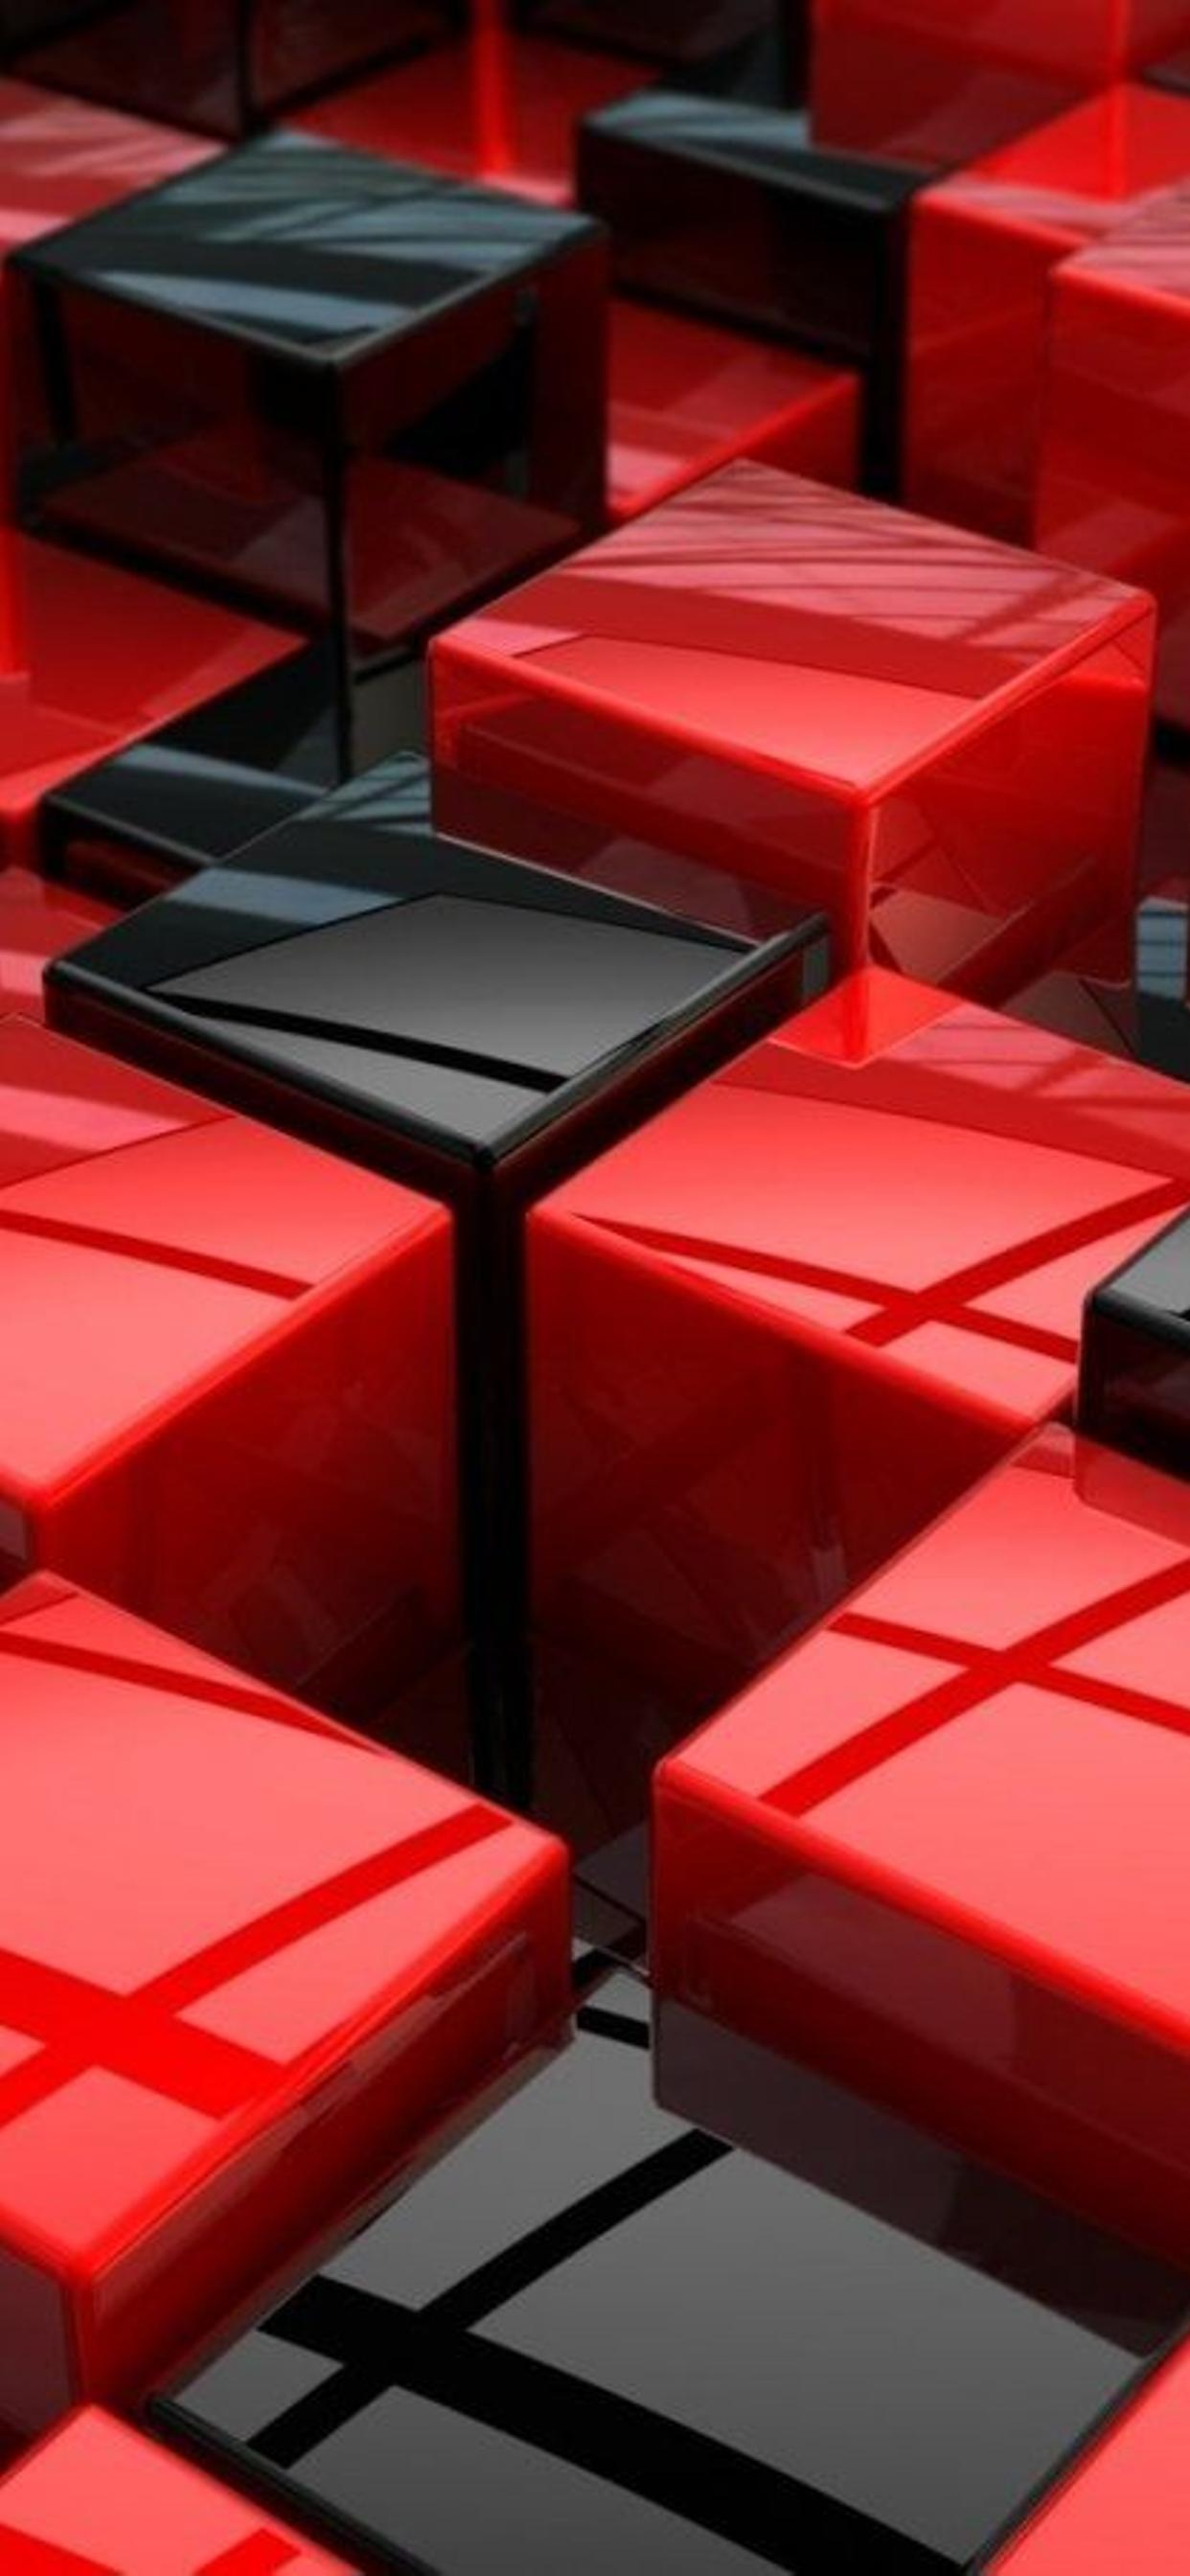 Black And Red 3d Boxes On The Wall Hd Wallpaper